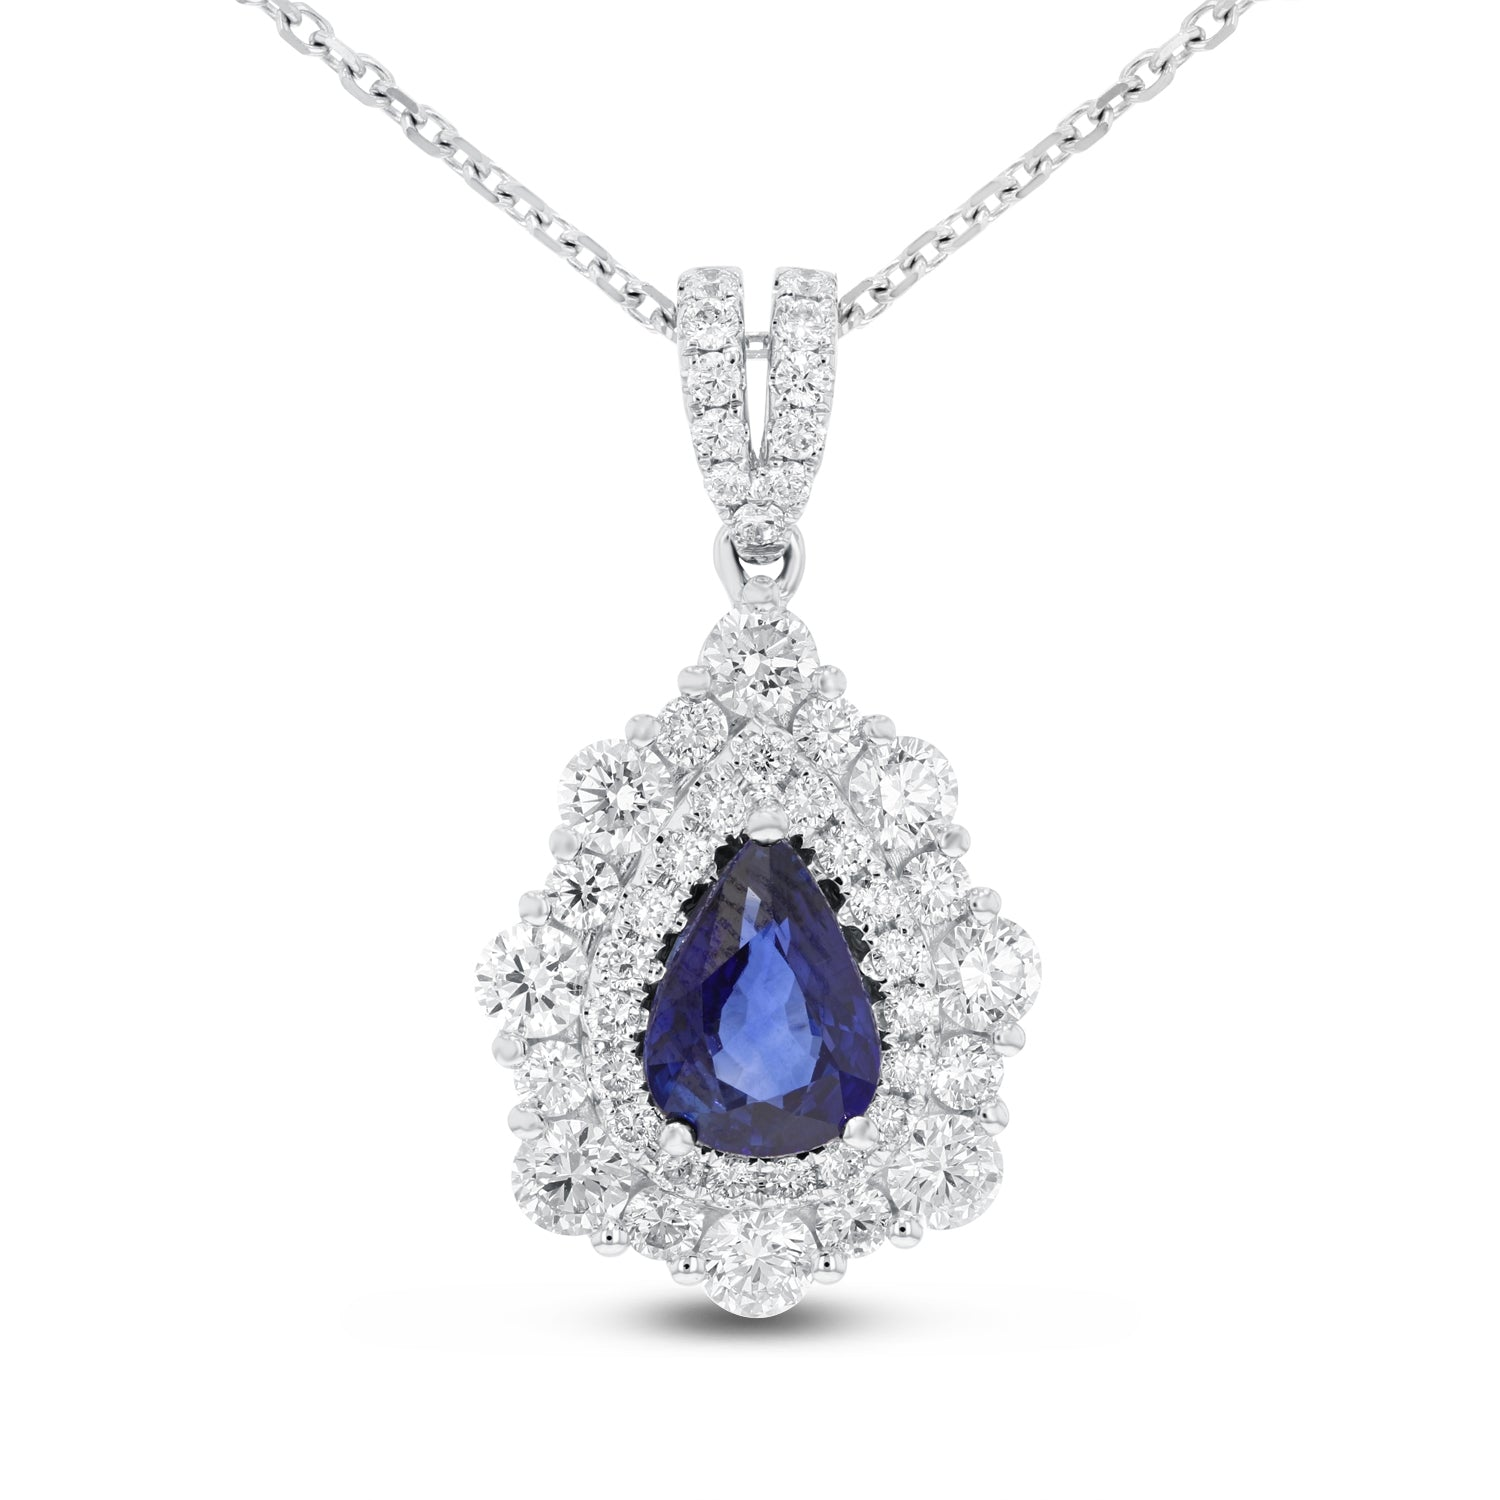 18K White Gold Diamond and Gem Pendant, 2.87 Carats